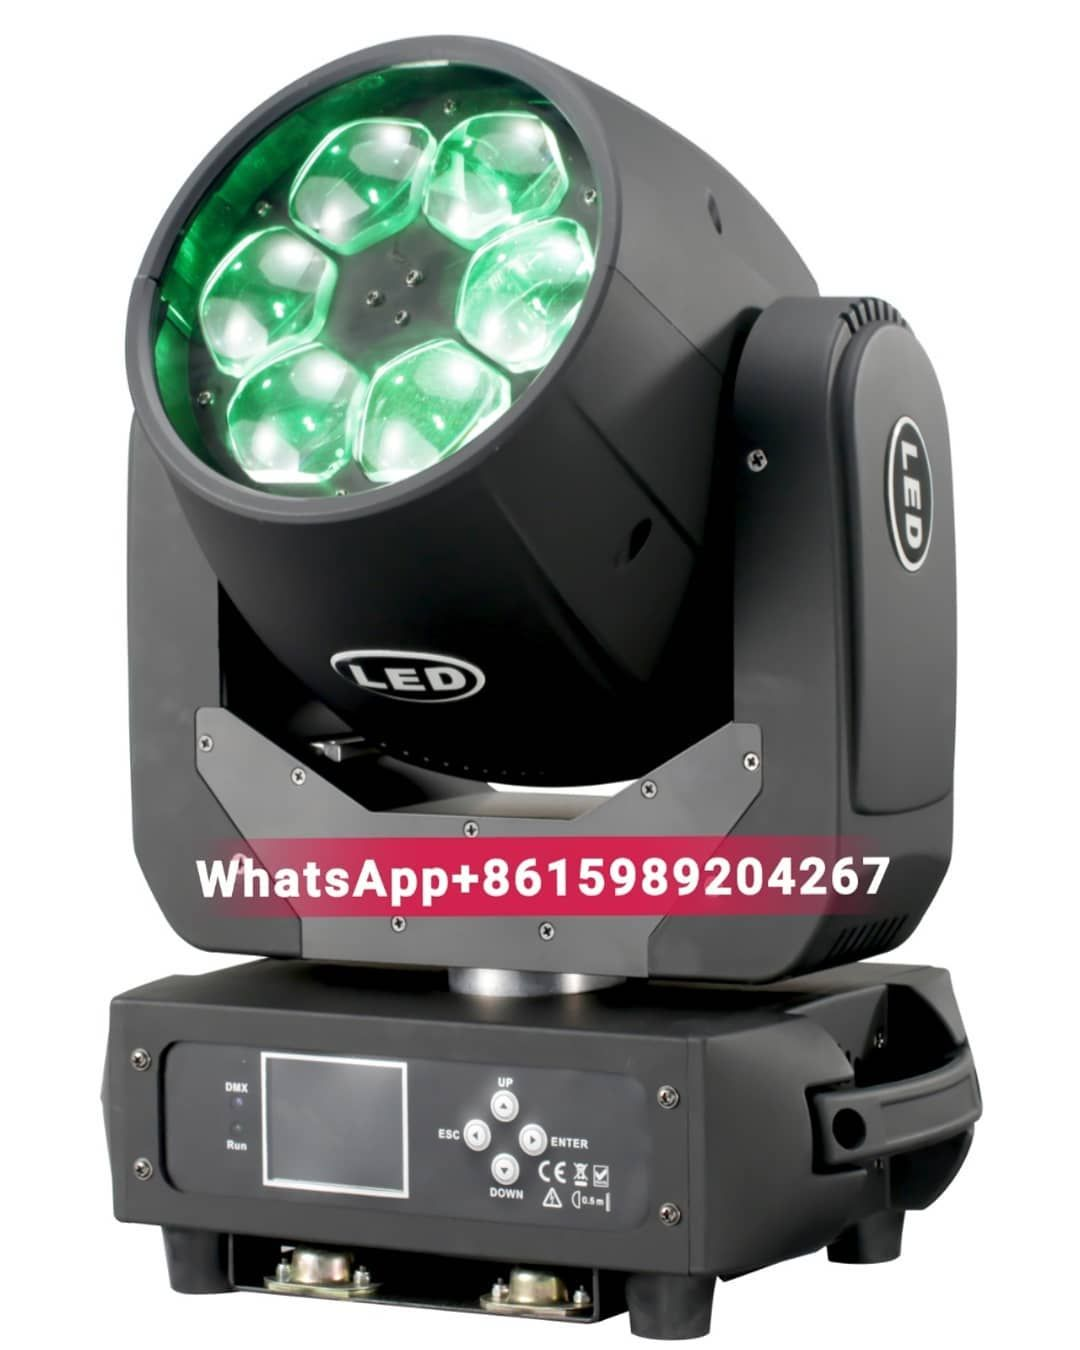 6 40w Rgbw Bee Eyes Zoom Wash Led Moving Head Light Whatsapp 8615989204267 Club Stagelife Weddings Ledlighting Parlight Led Headlights Light Beam